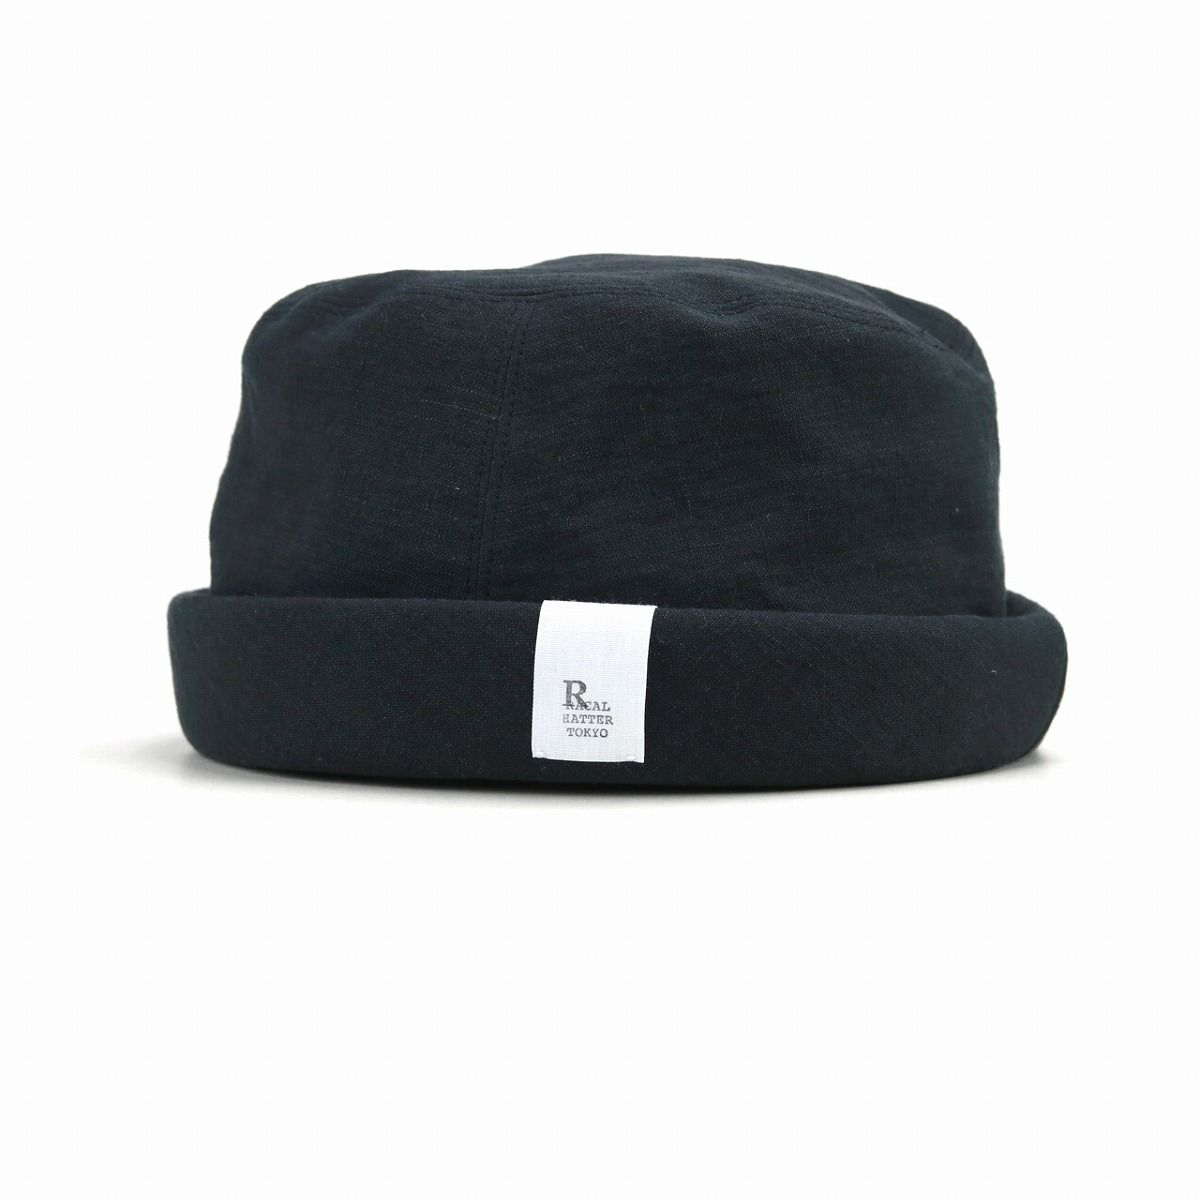 a4b71a4eb534 ELEHELM HAT STORE | Rakuten Global Market: ラカル hat racal hat Shin pull  plain fabric